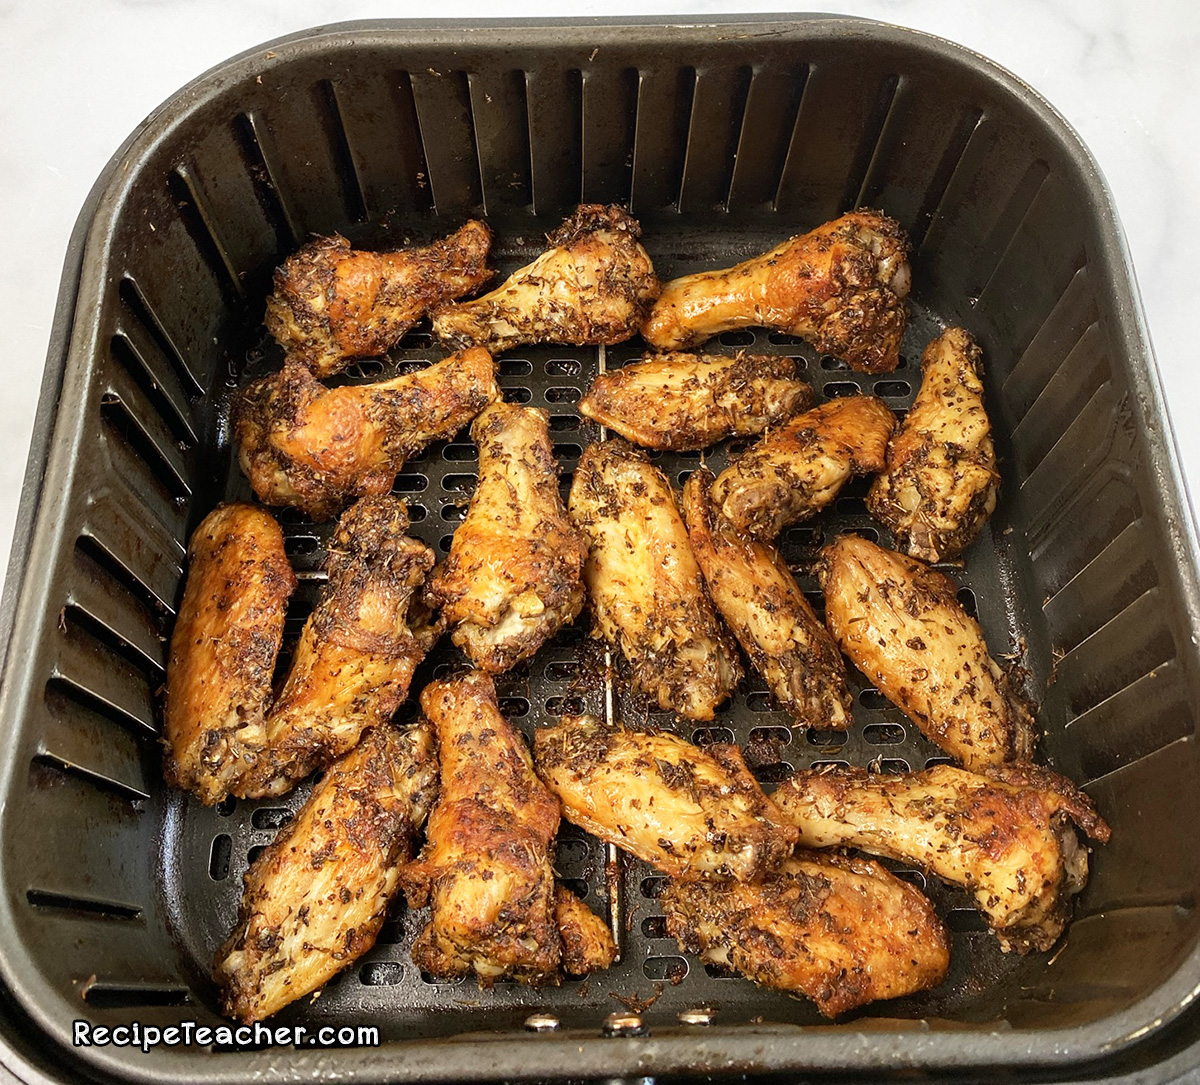 Recipe for air fryer chicken wings